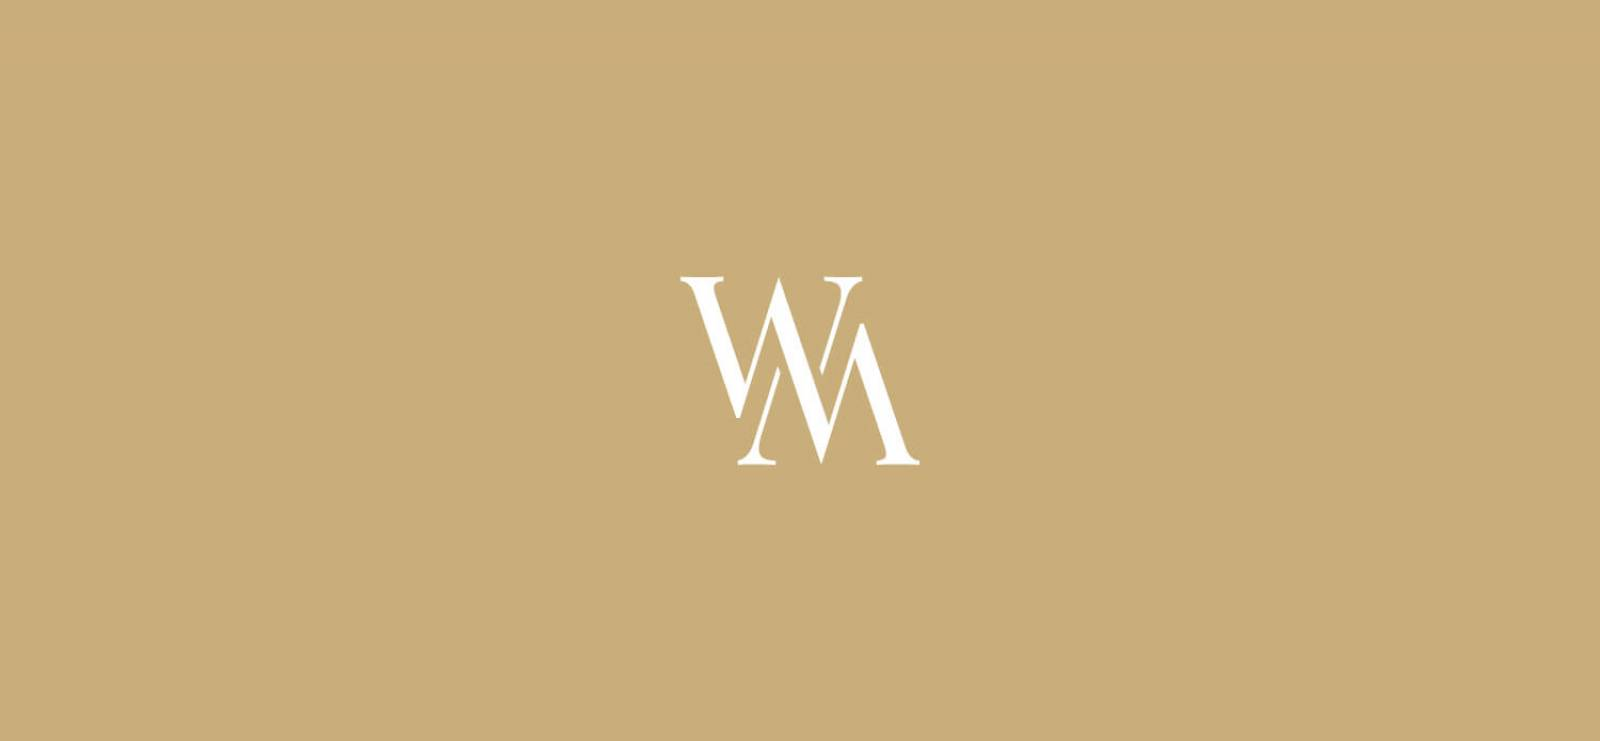 Watchme-logo-corporate-identity-agency-graphic-design-canterbury.jpg